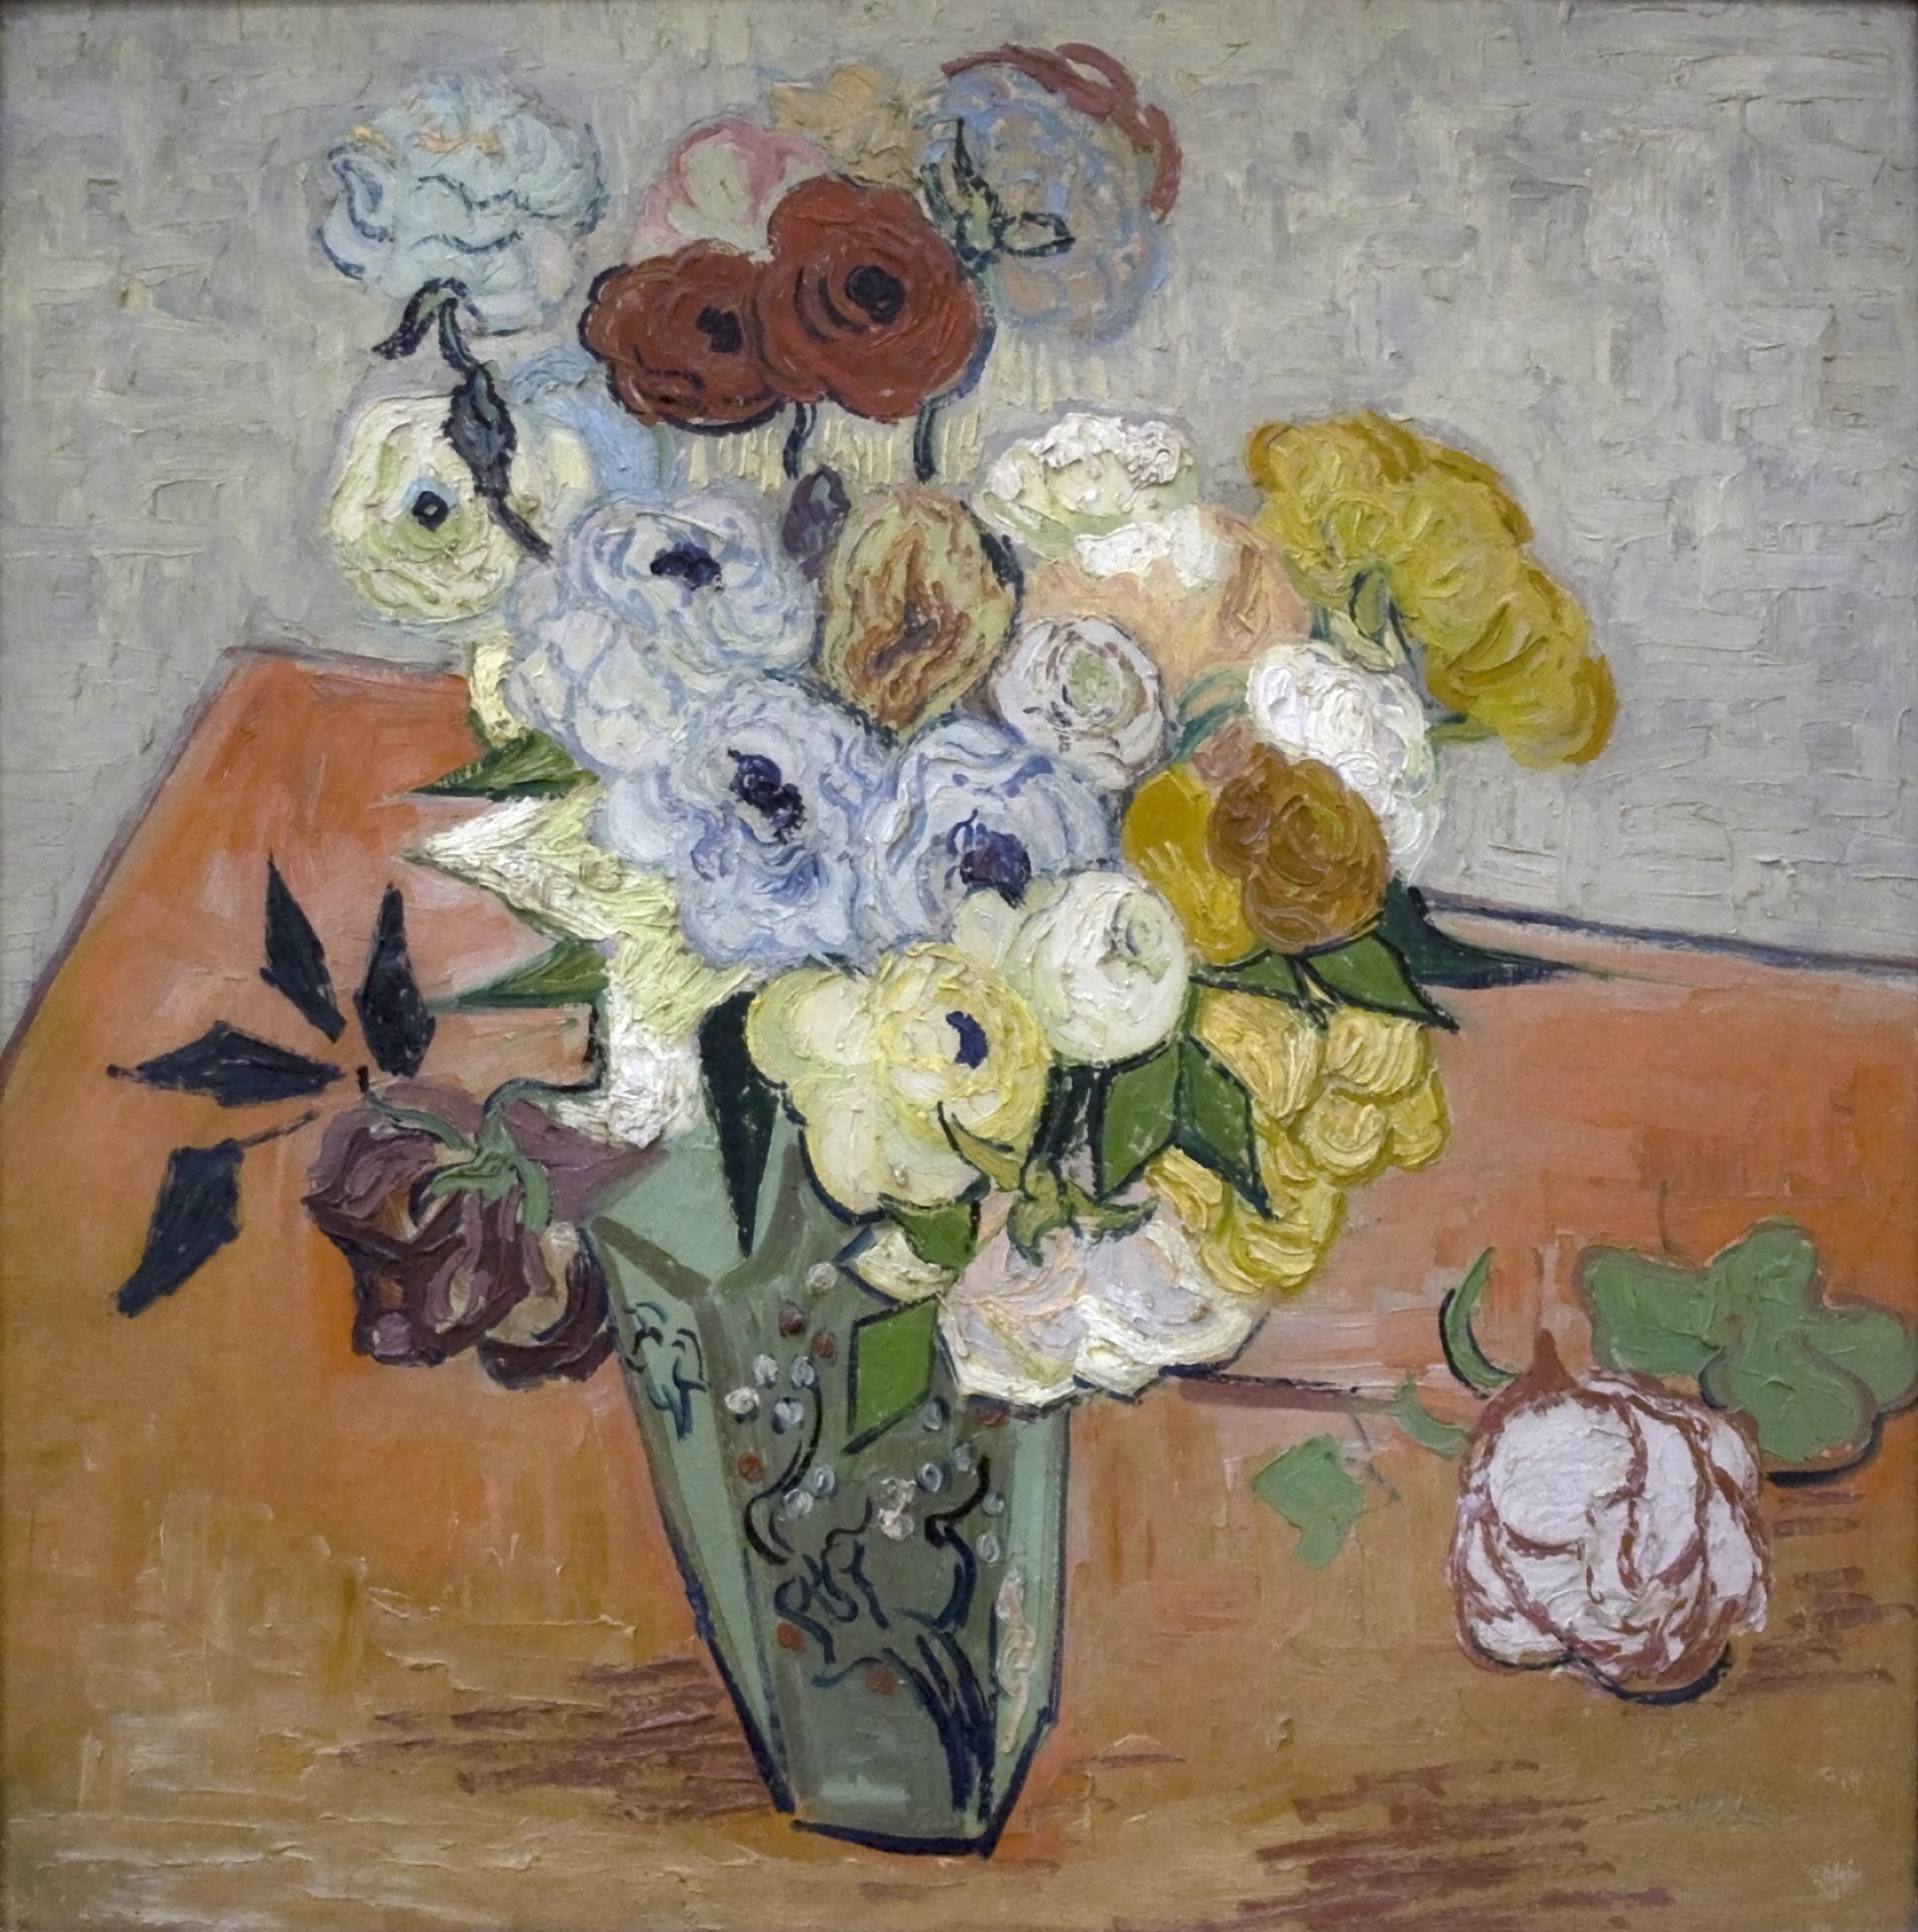 FileStill Life , Japanese Vase with Roses and Anemones